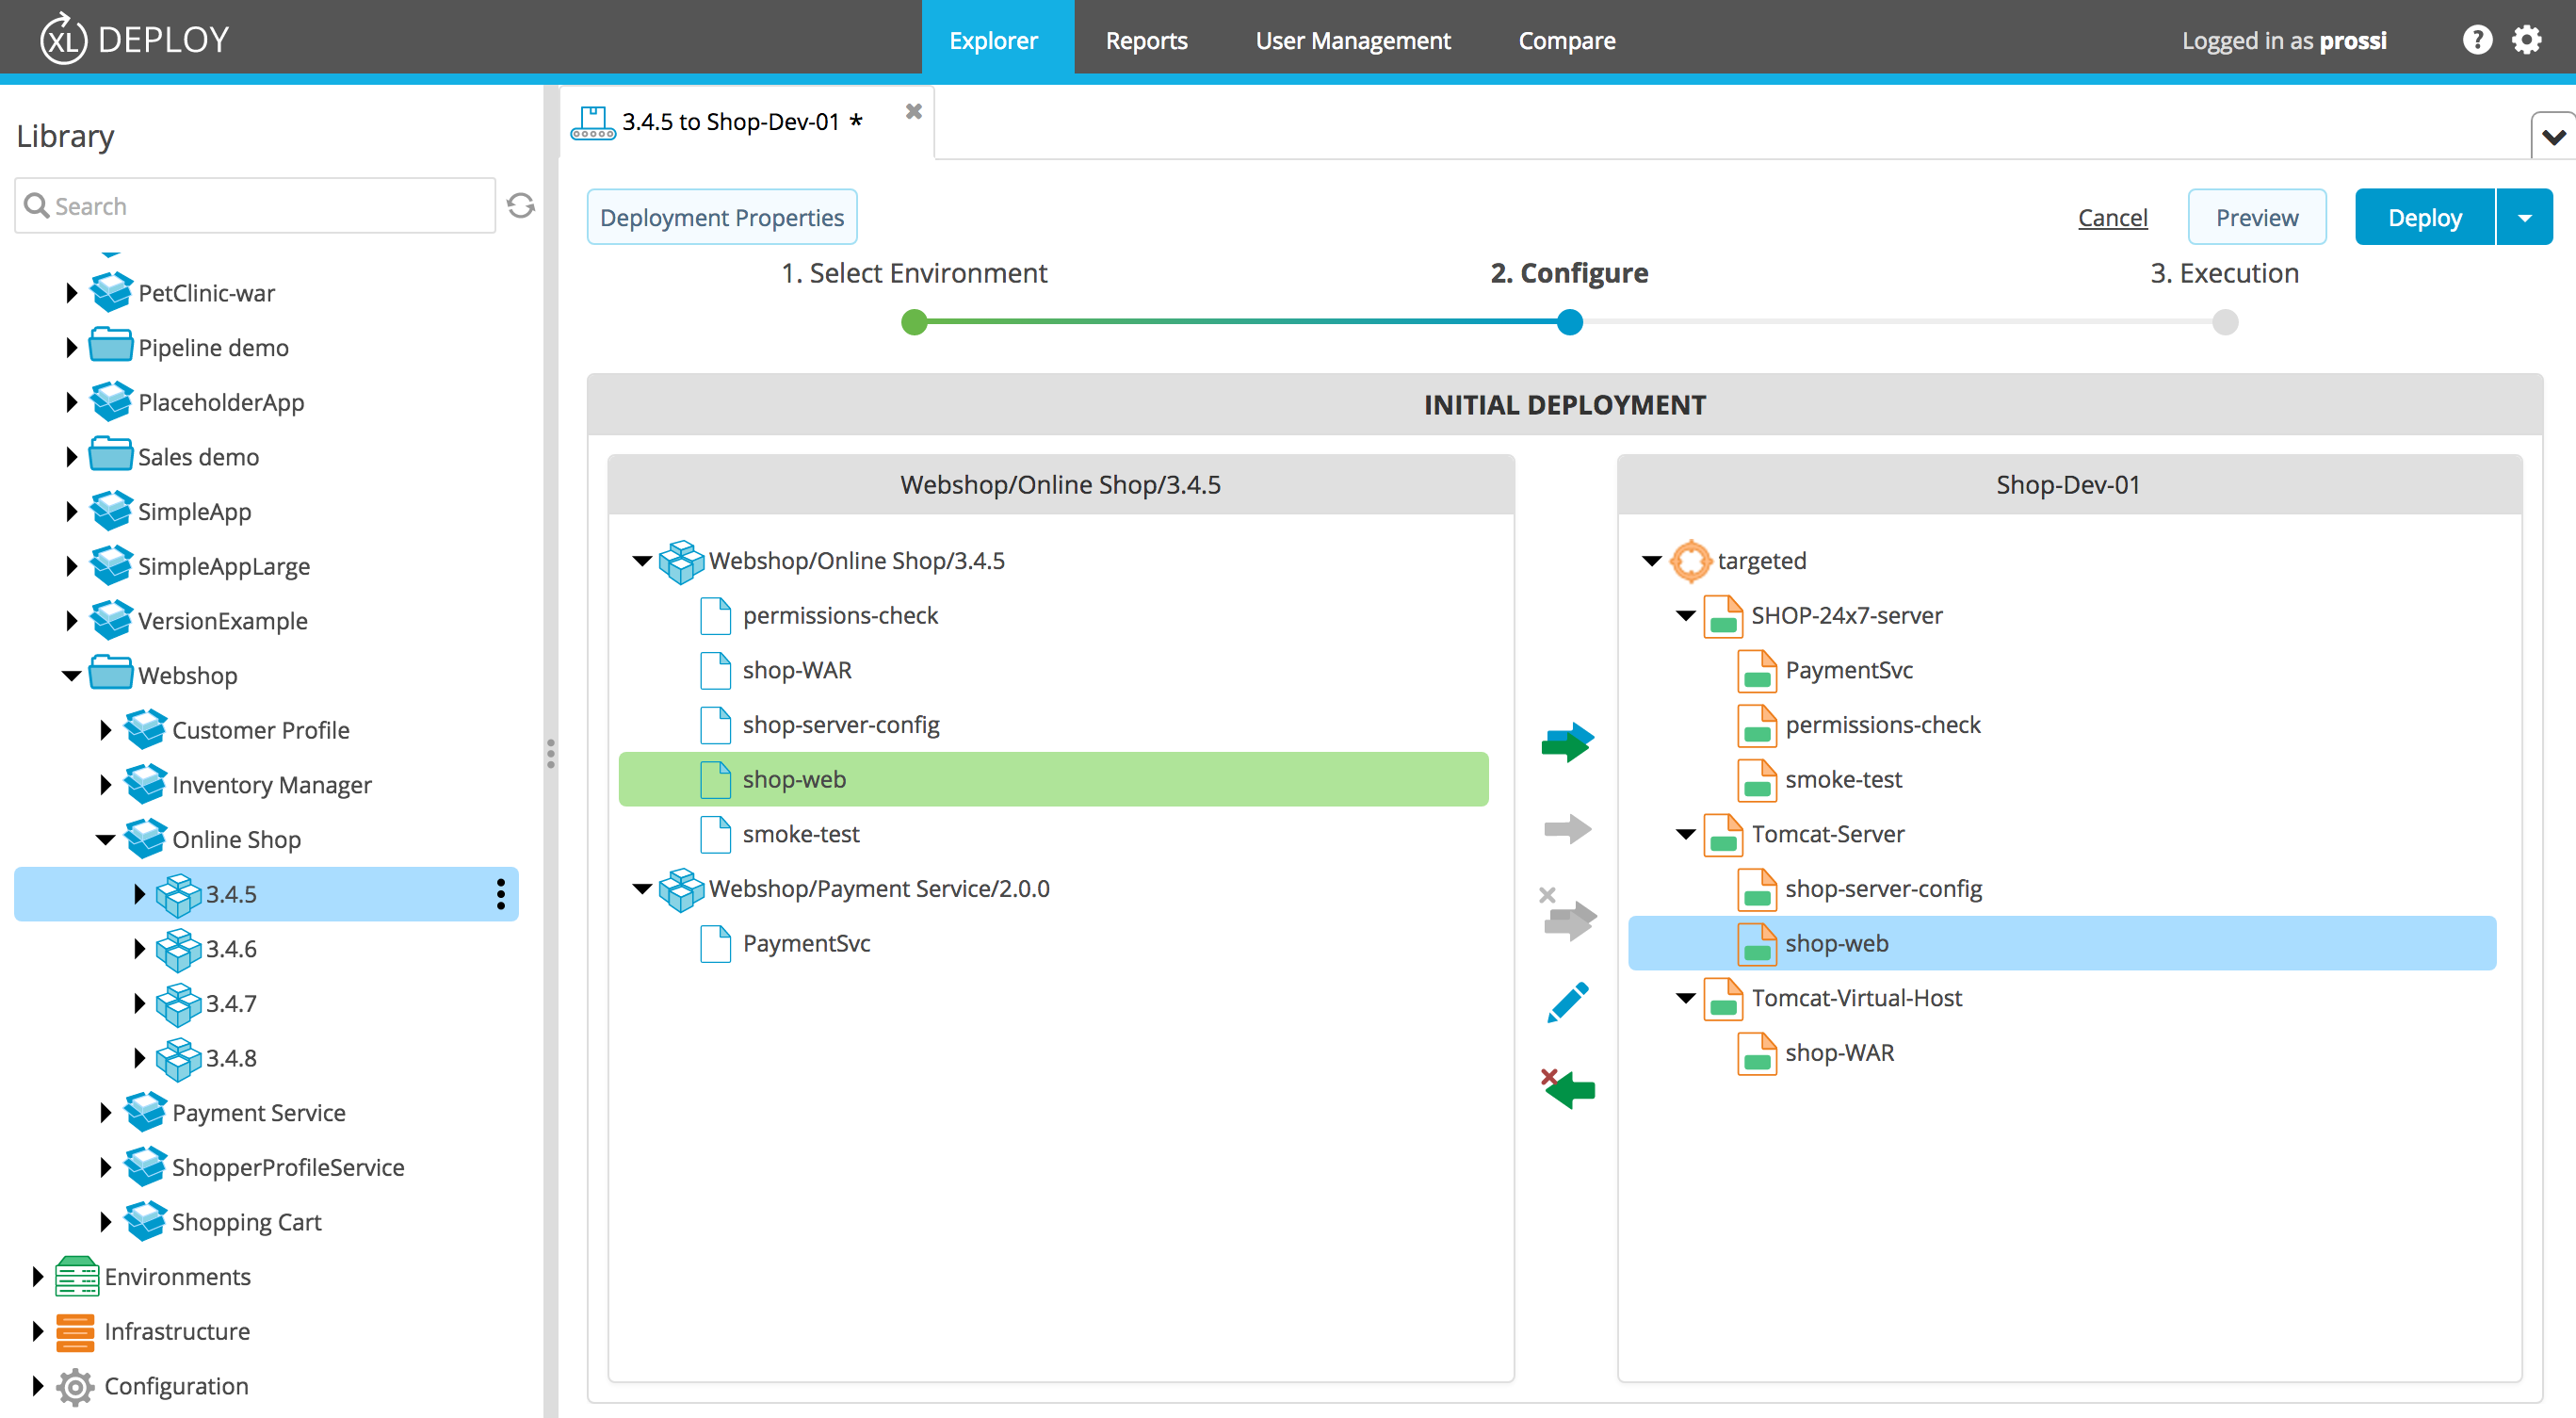 XL Deploy v7.0 Deployment Mappings